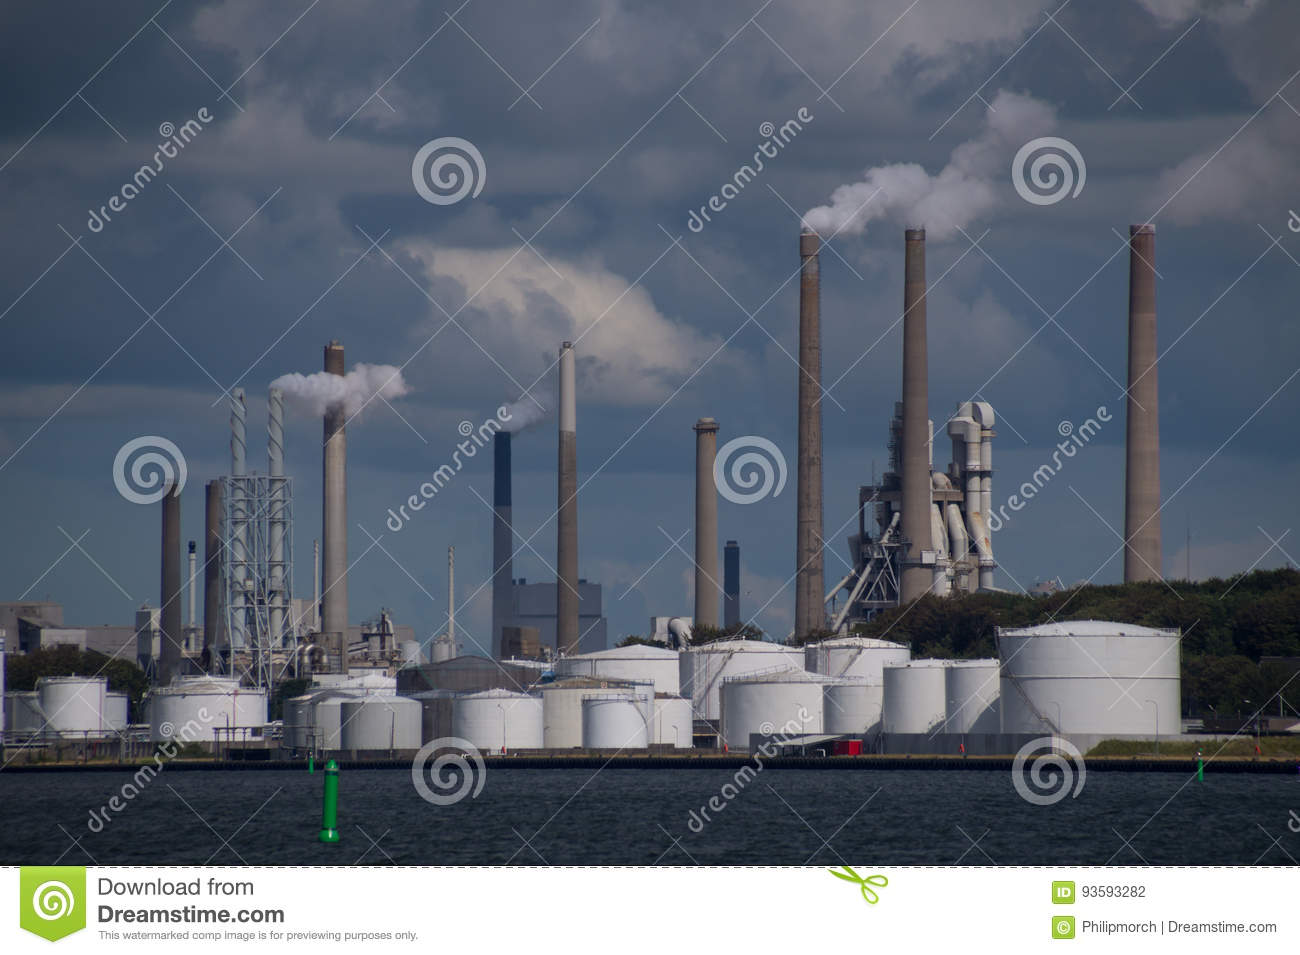 Download Air Pollution From Chimneys At Industrial Factory Plant Stock Photo - Image of industrial, fuel: 93593282